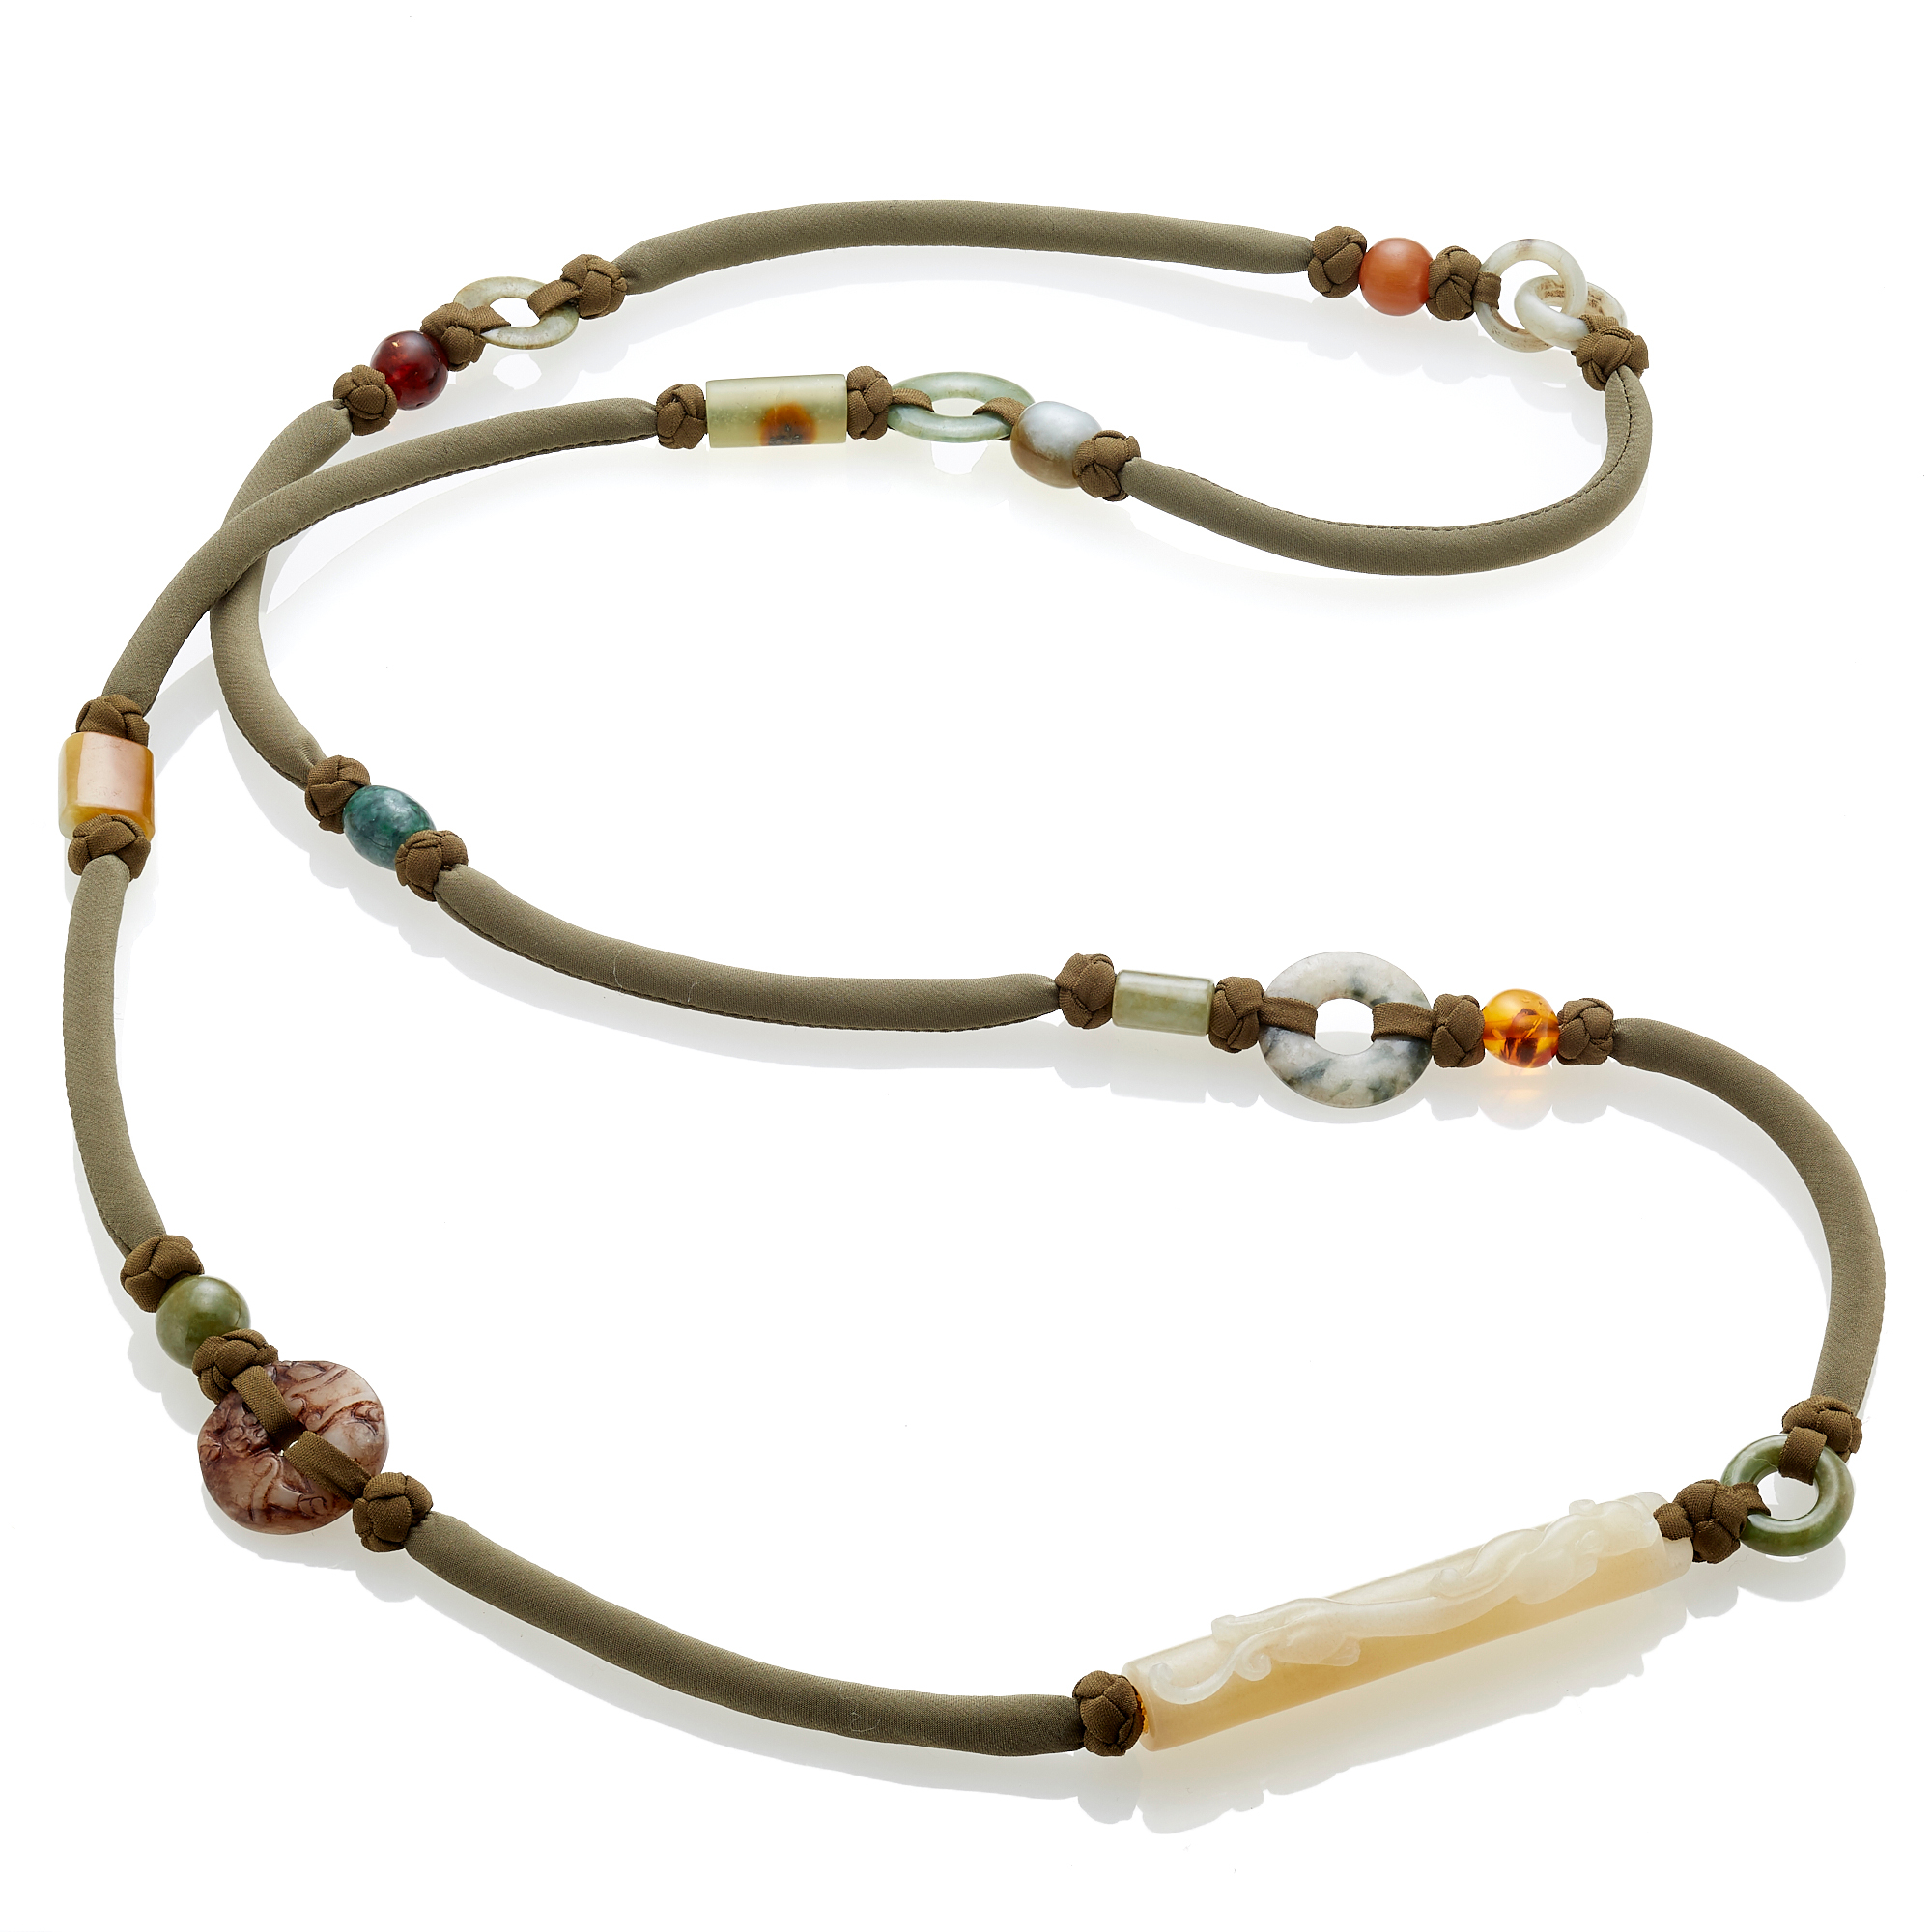 Pat Tseng Multi Shaped Jades, Serpentine And Amber Bead Necklace On Green Silk Cord